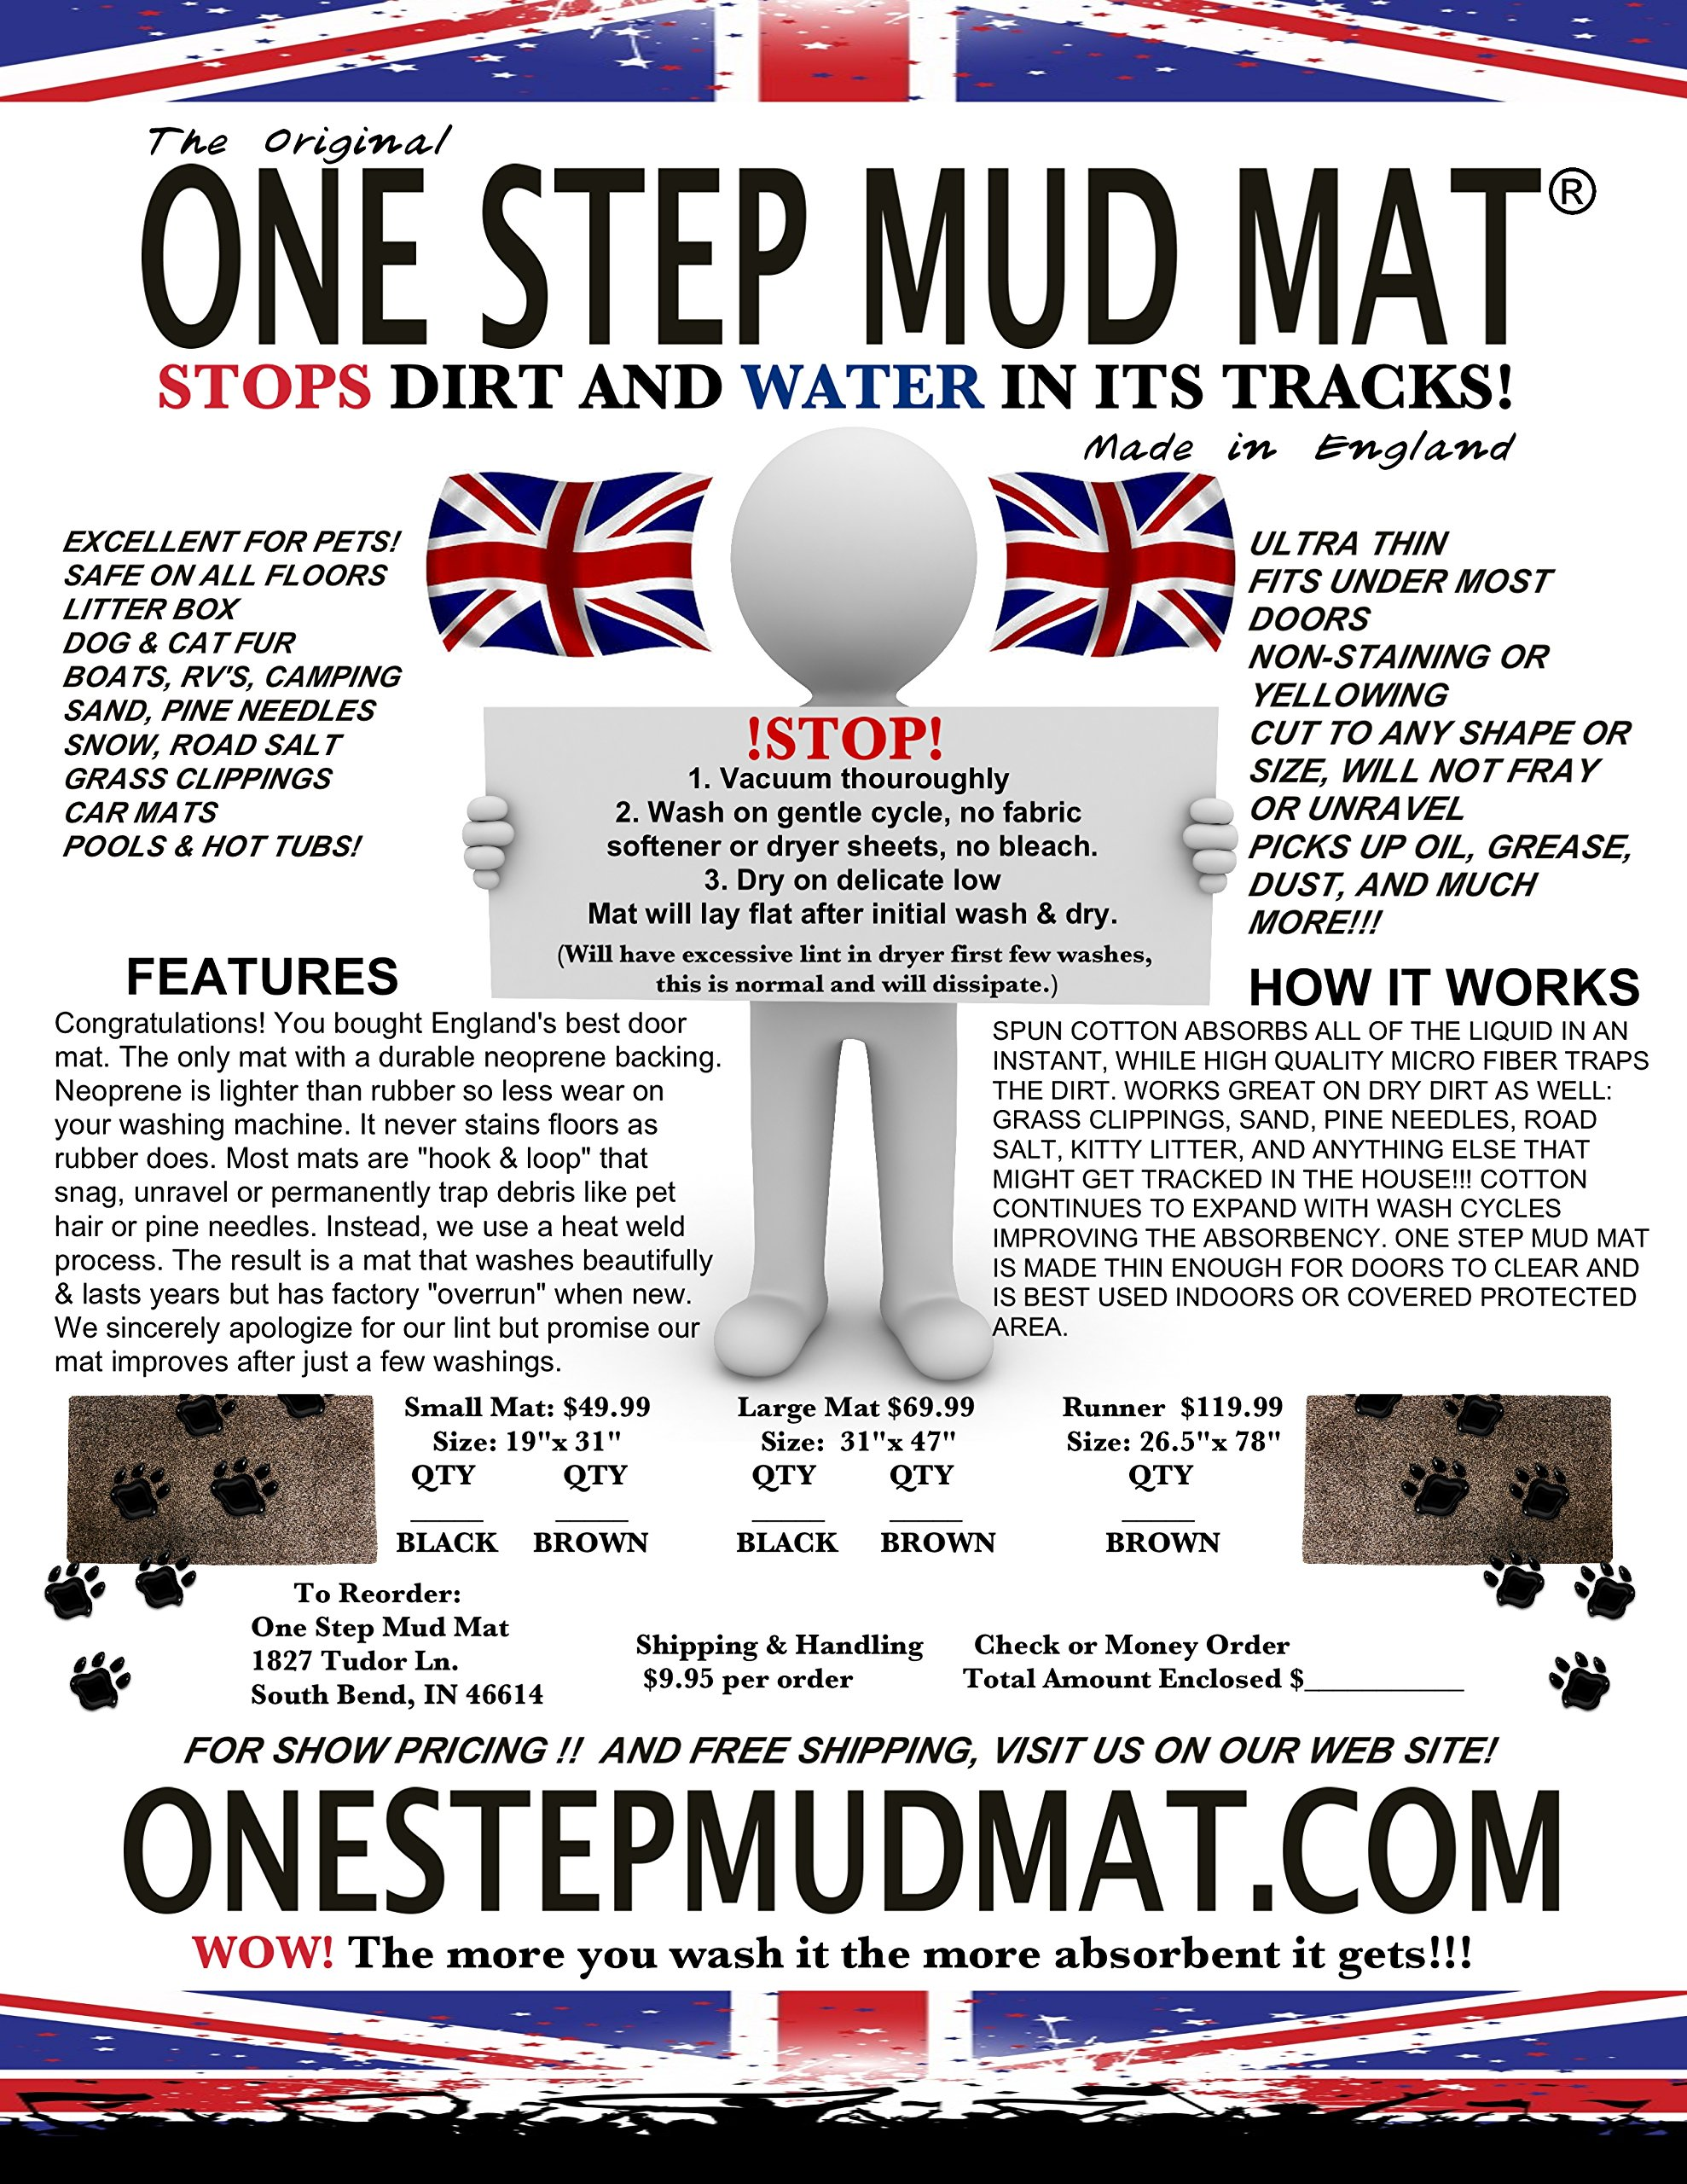 One Step Mud Mat Original Made in England 26.5W x 78L Runner (Brown) Indoor Floor Mat with Non Slip Backing Traps Mud and Dirt Perfect for Pets Excellent for High Traffic Areas by ONE STEP MUD MAT STOPS DIRT AND WATER IN ITS TRACKS! (Image #4)